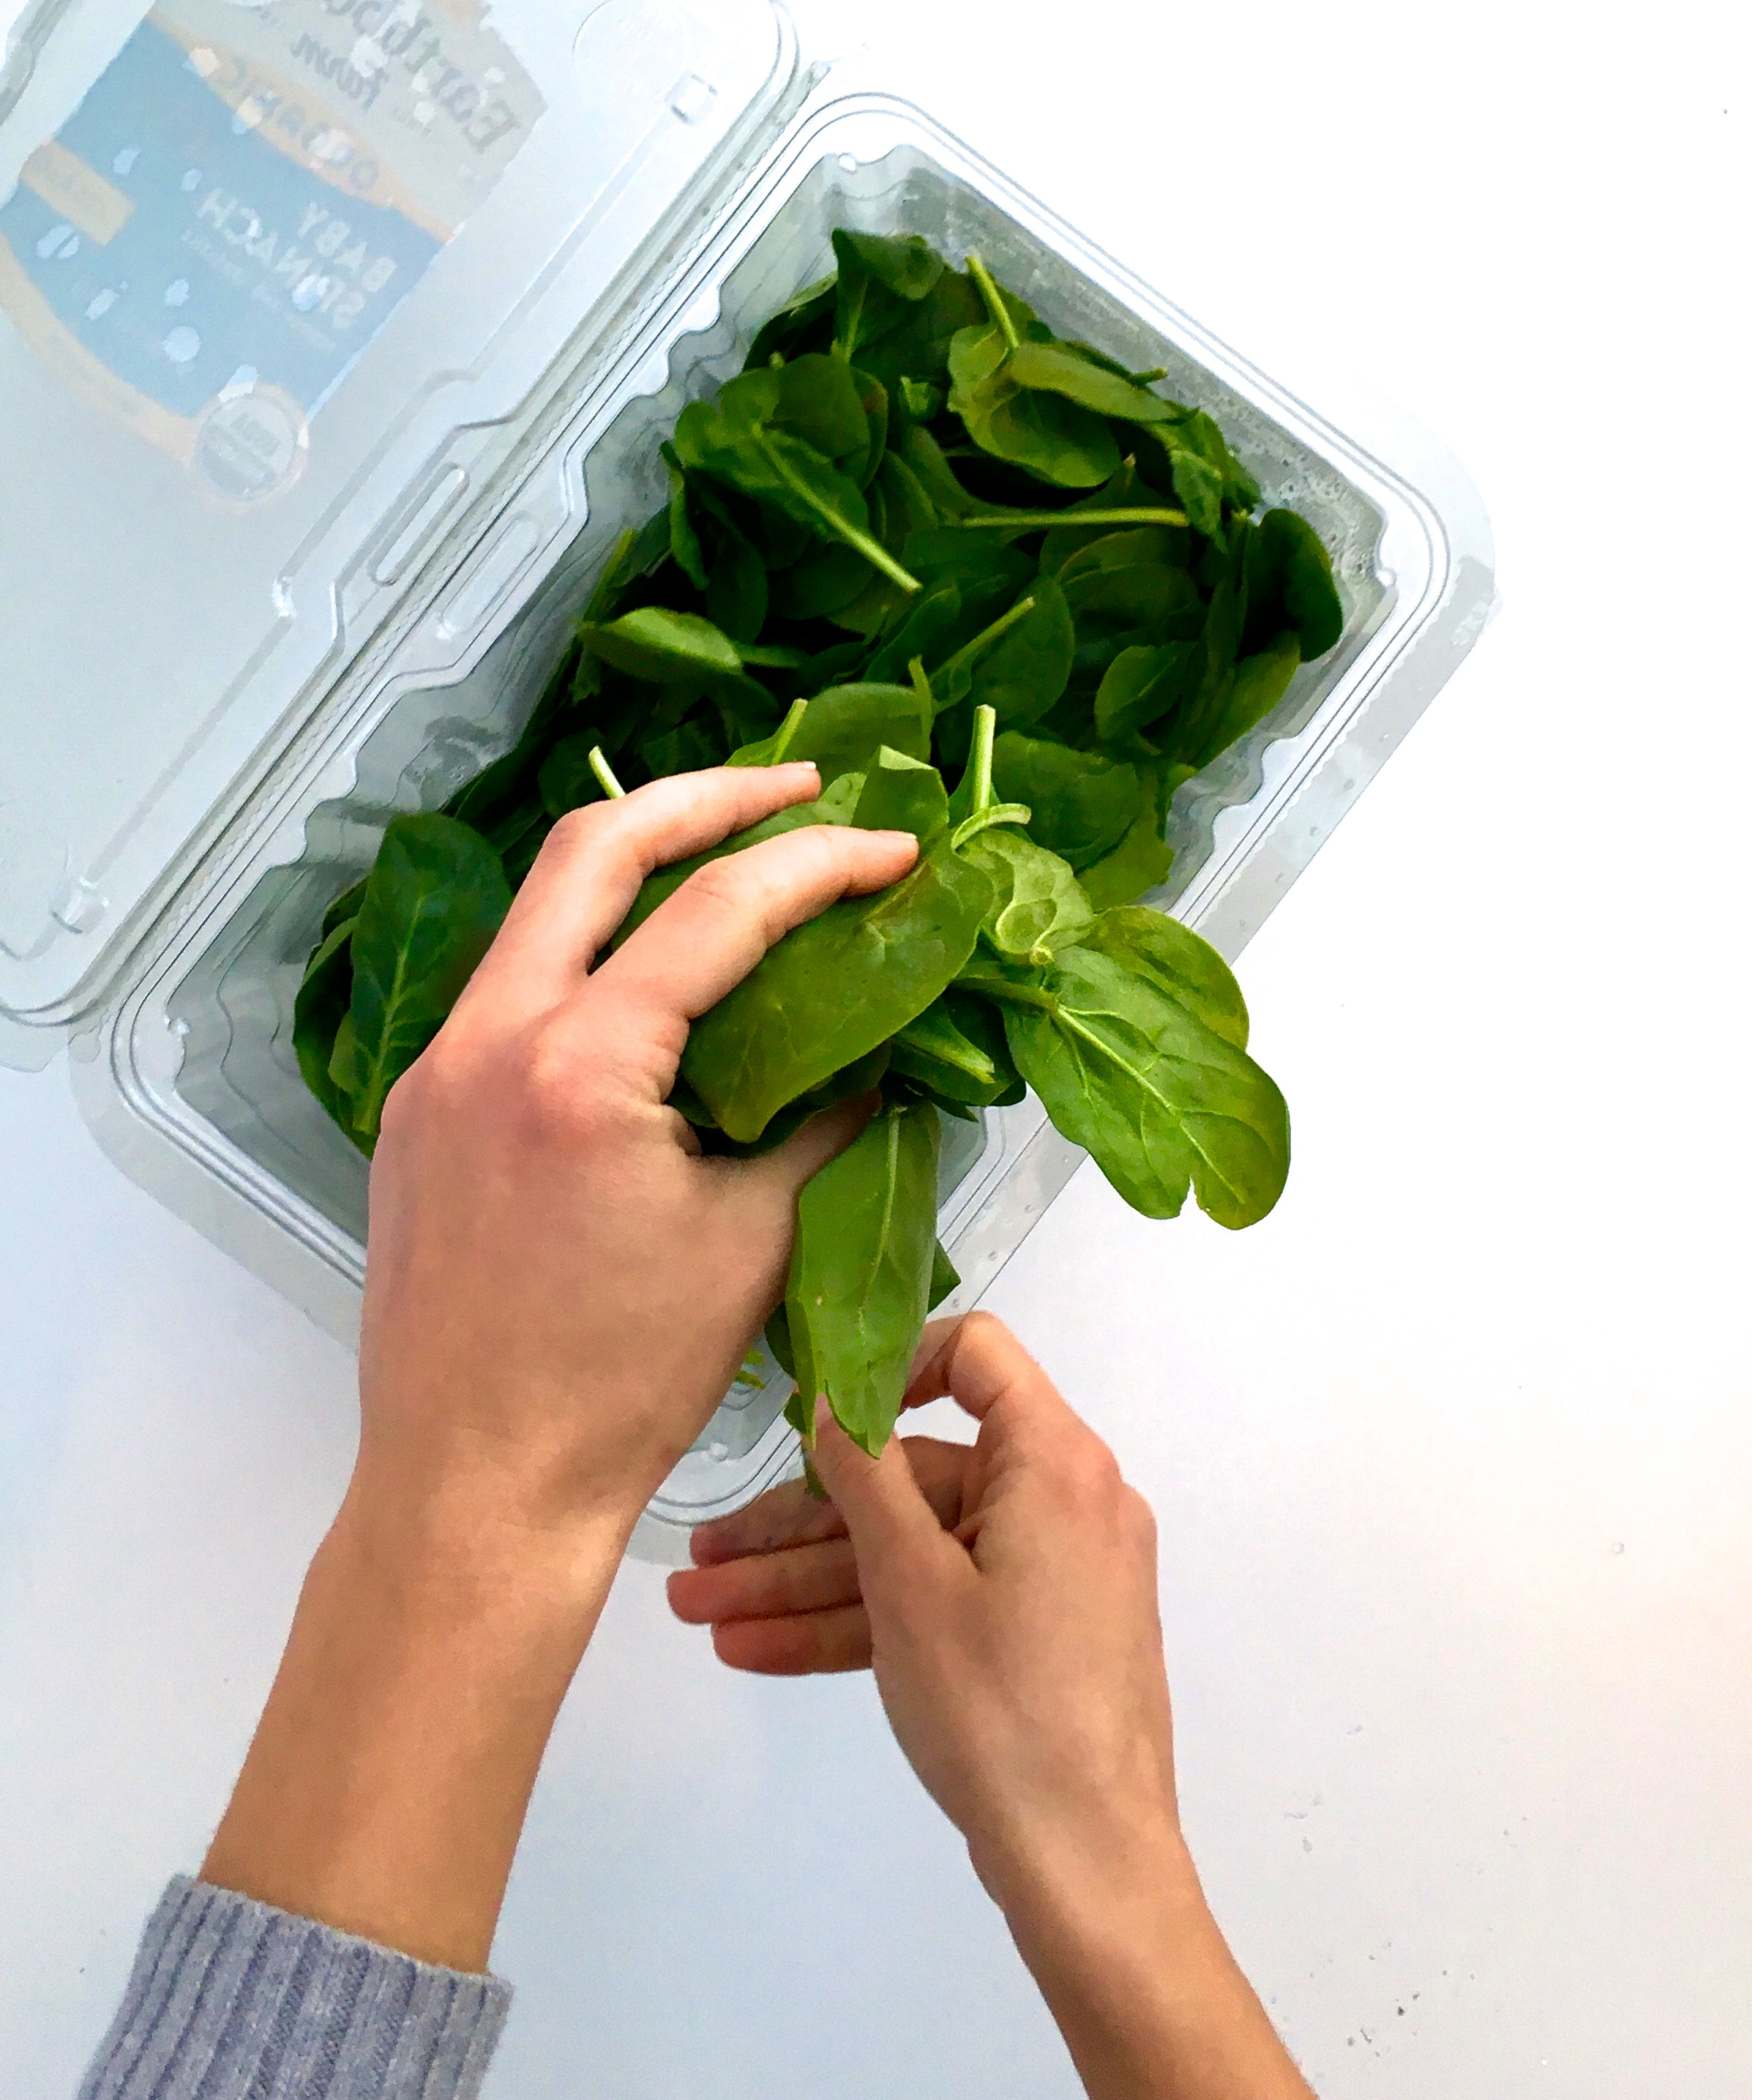 Behold…the power of spinach.